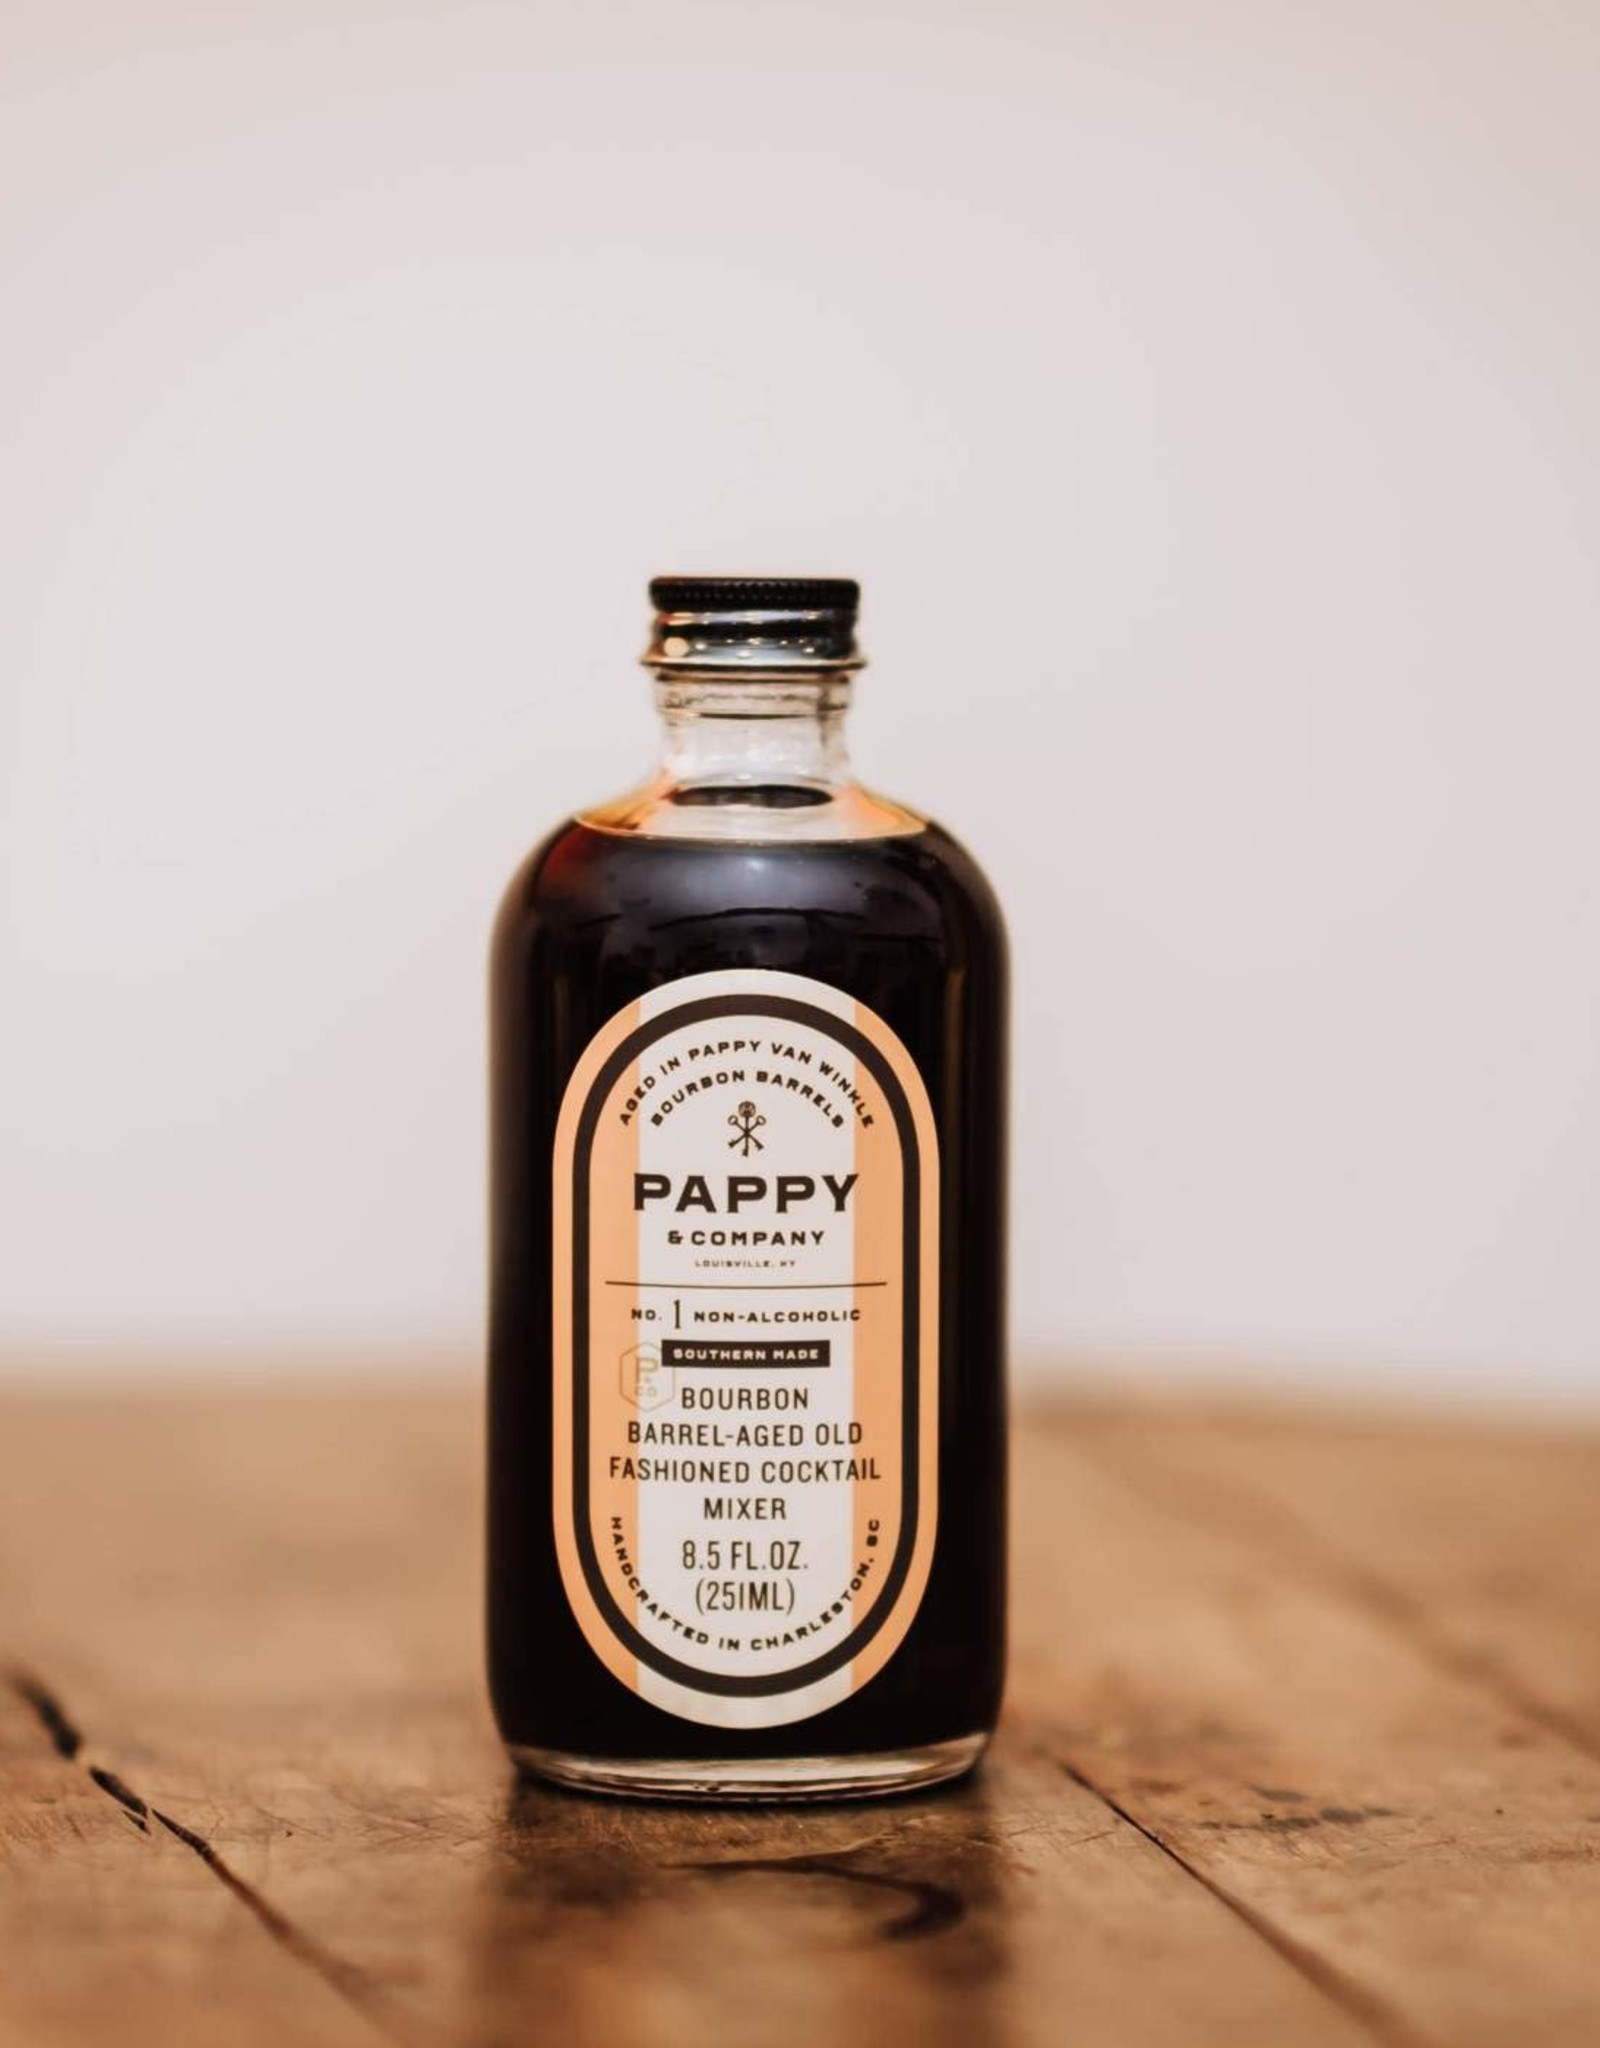 Pappy & Company Old Fashioned